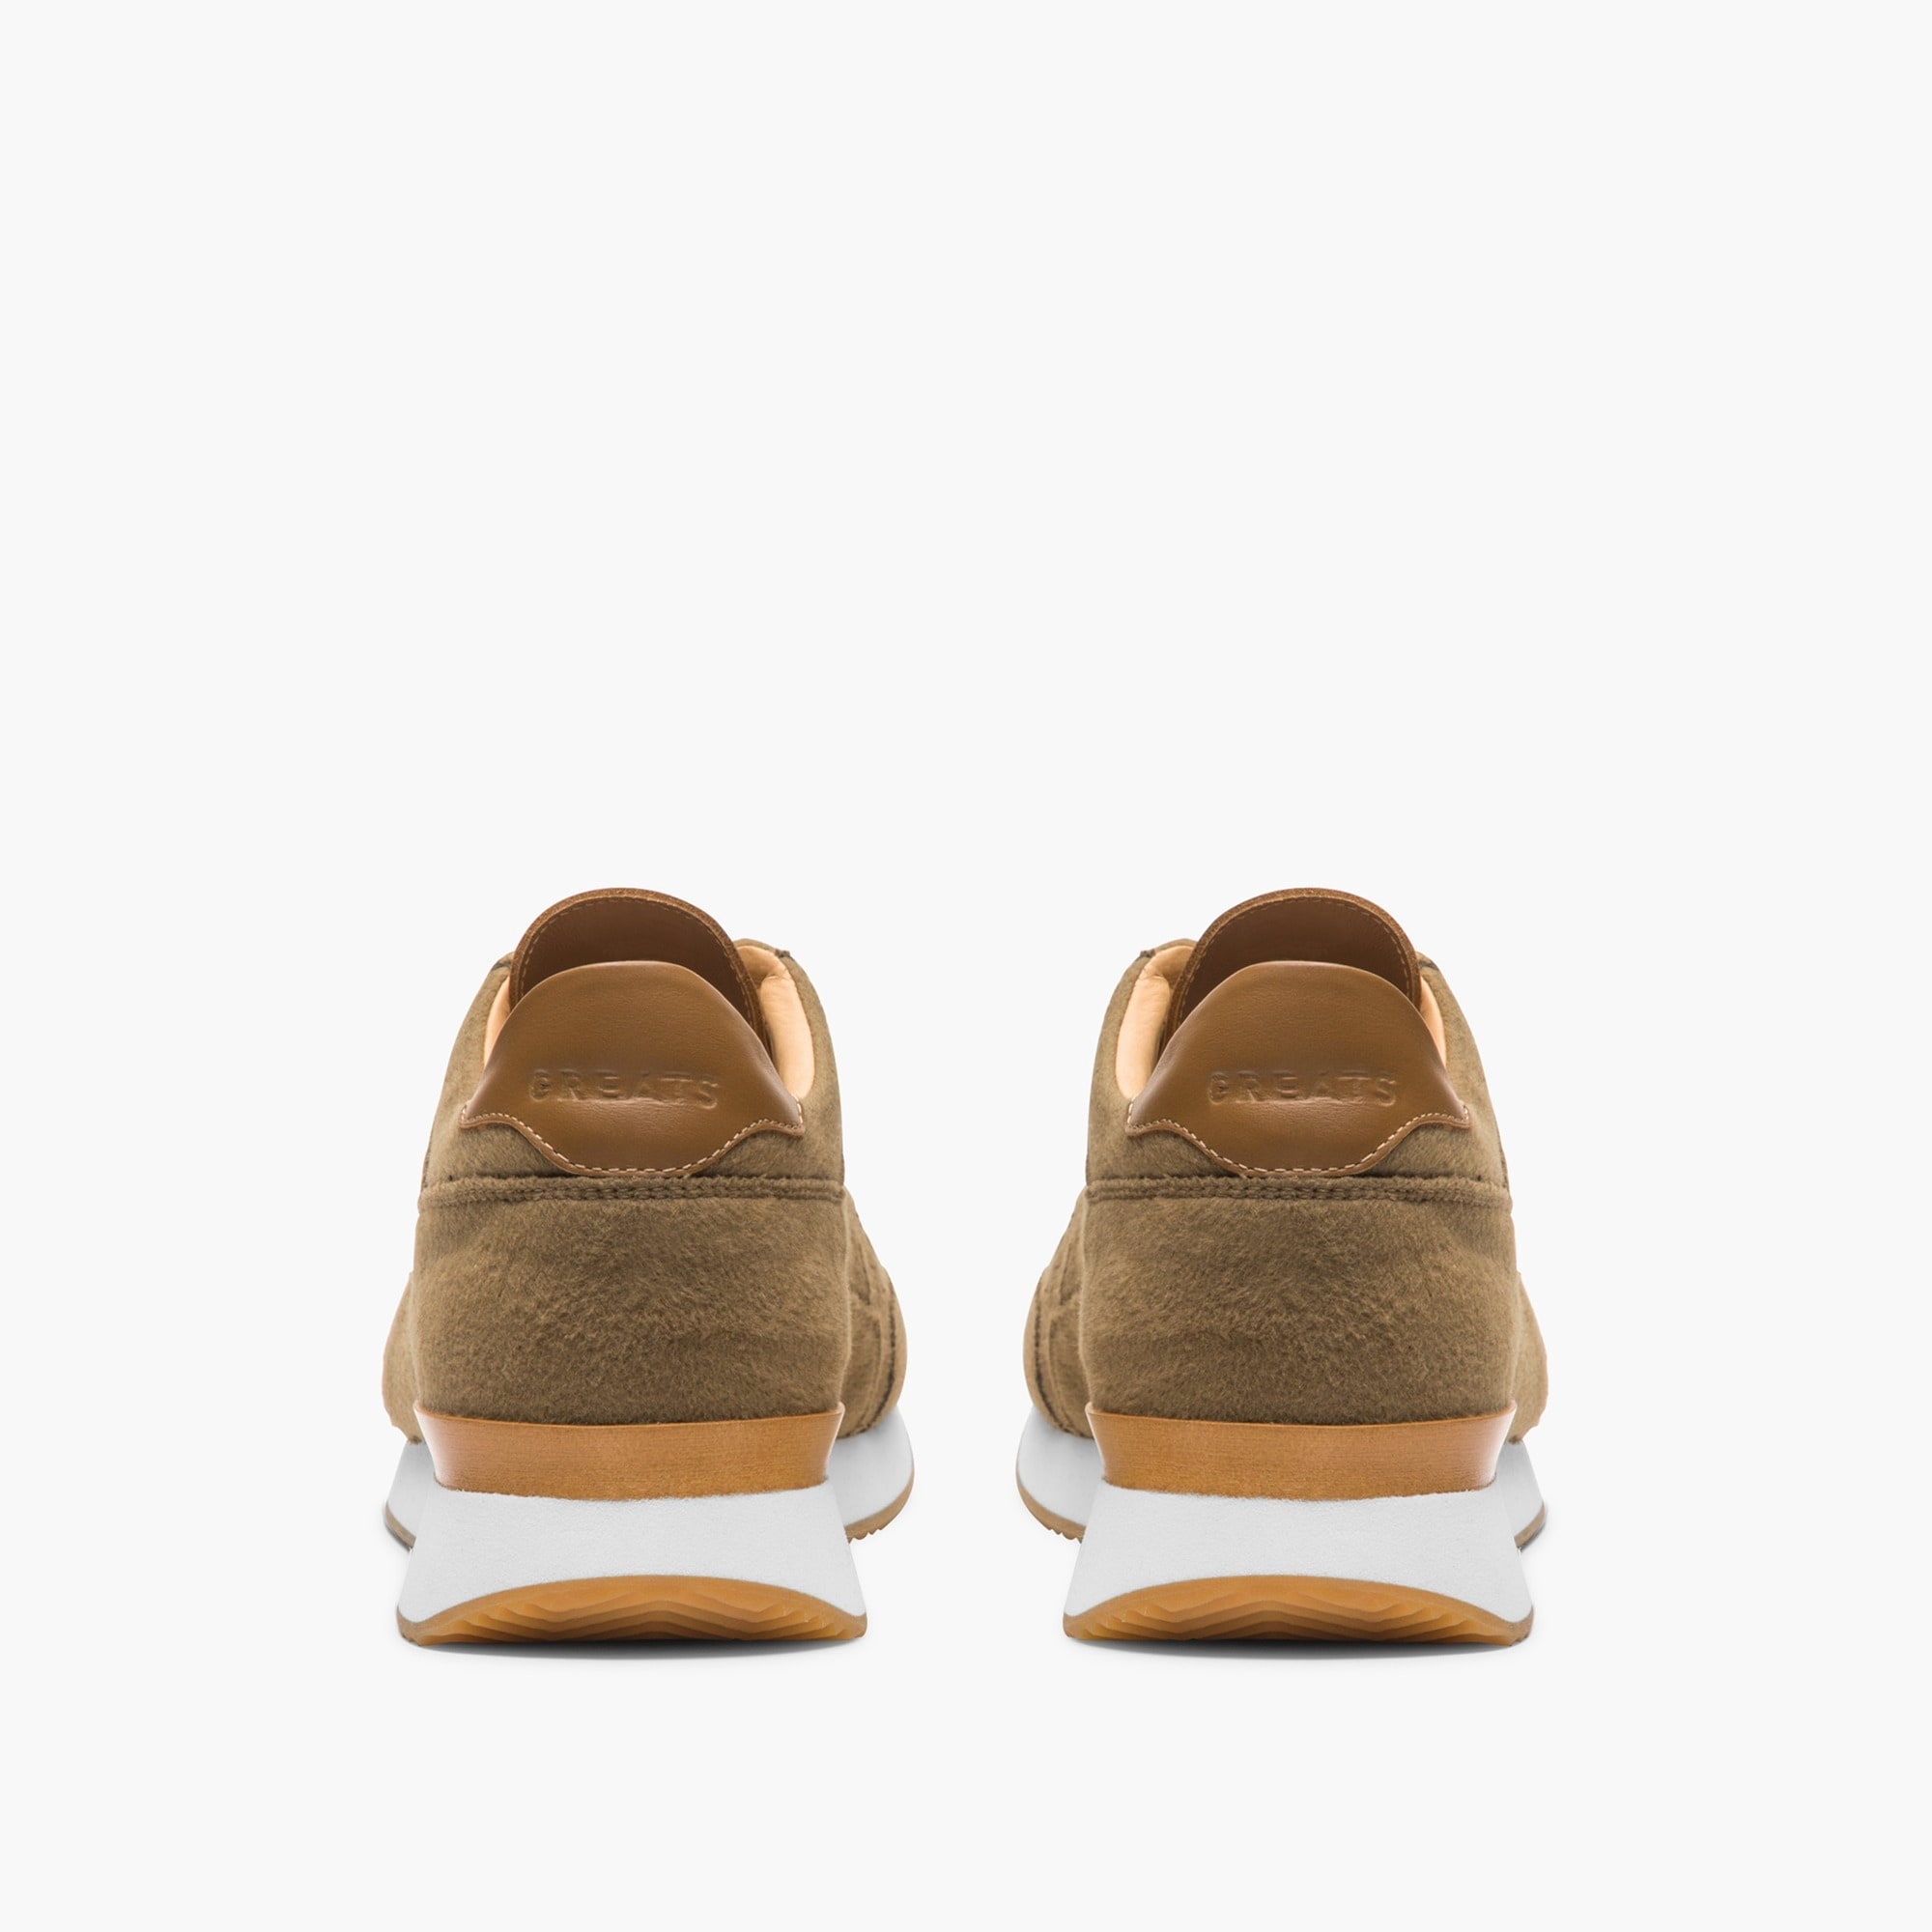 Image 2 for GREATS® Pronto sneakers in camel wool